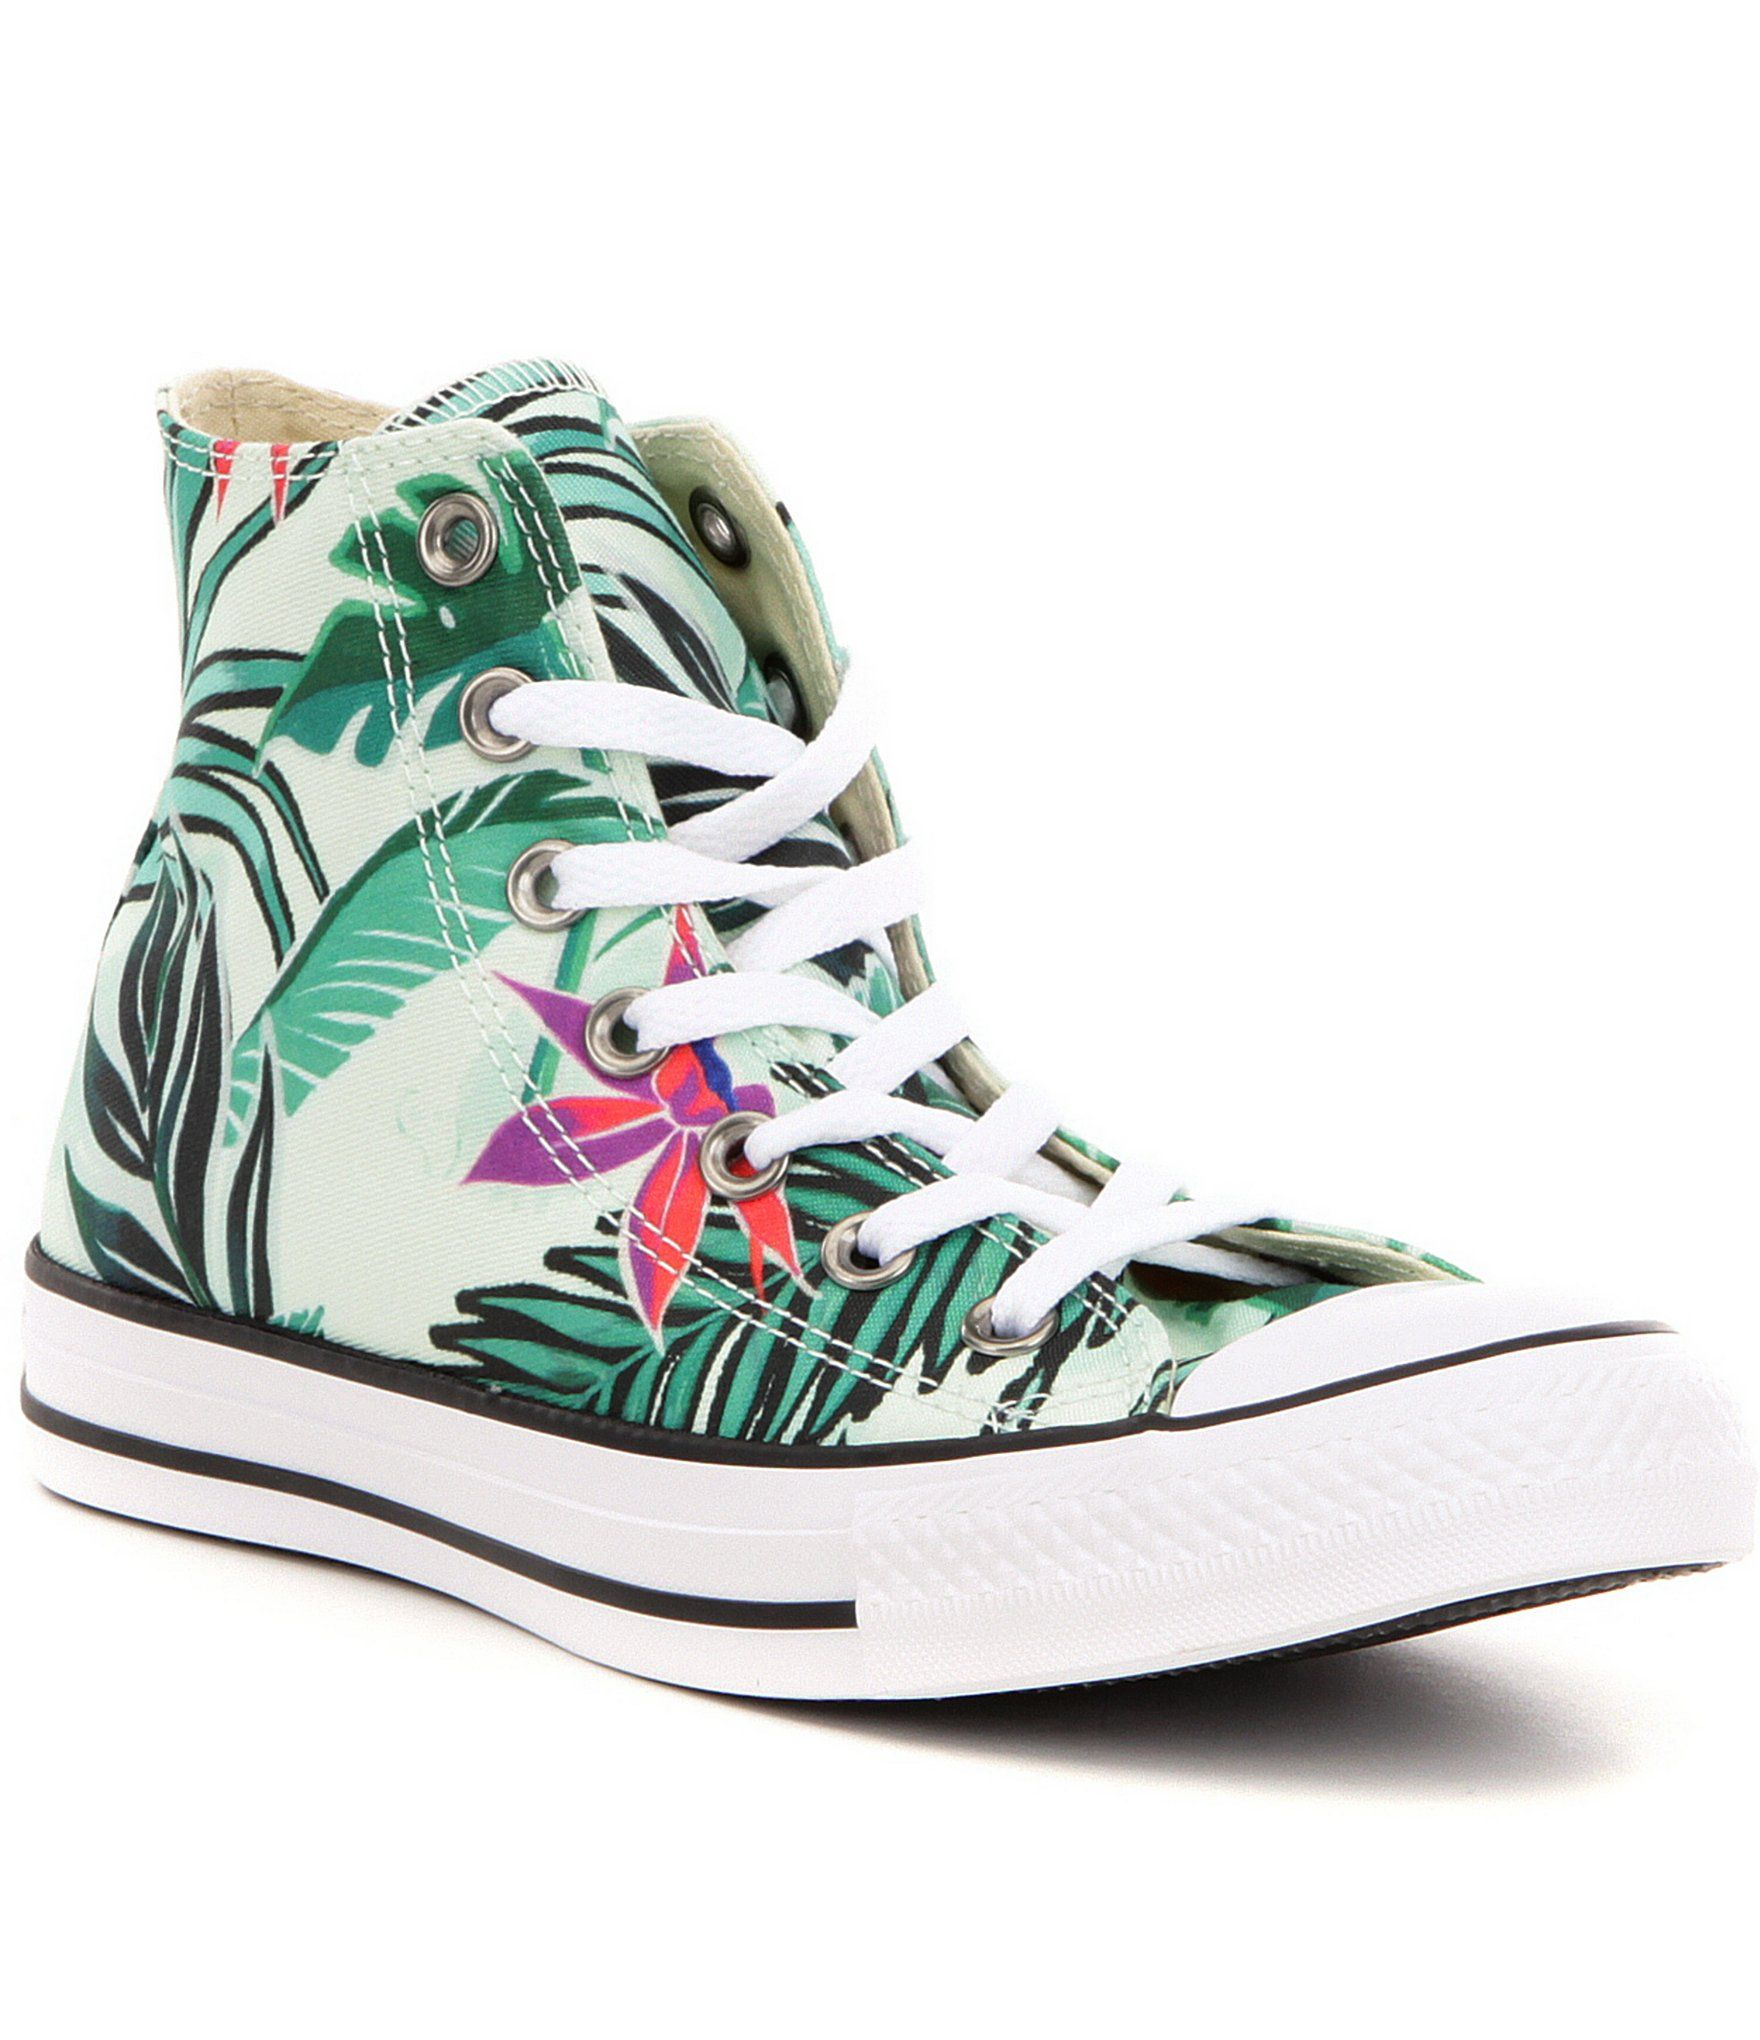 d13020d38c7c78 Converse Women´s Chuck Taylor® All Star® Hi-Top Floral Print Lace Up  Sneakers  Dillards